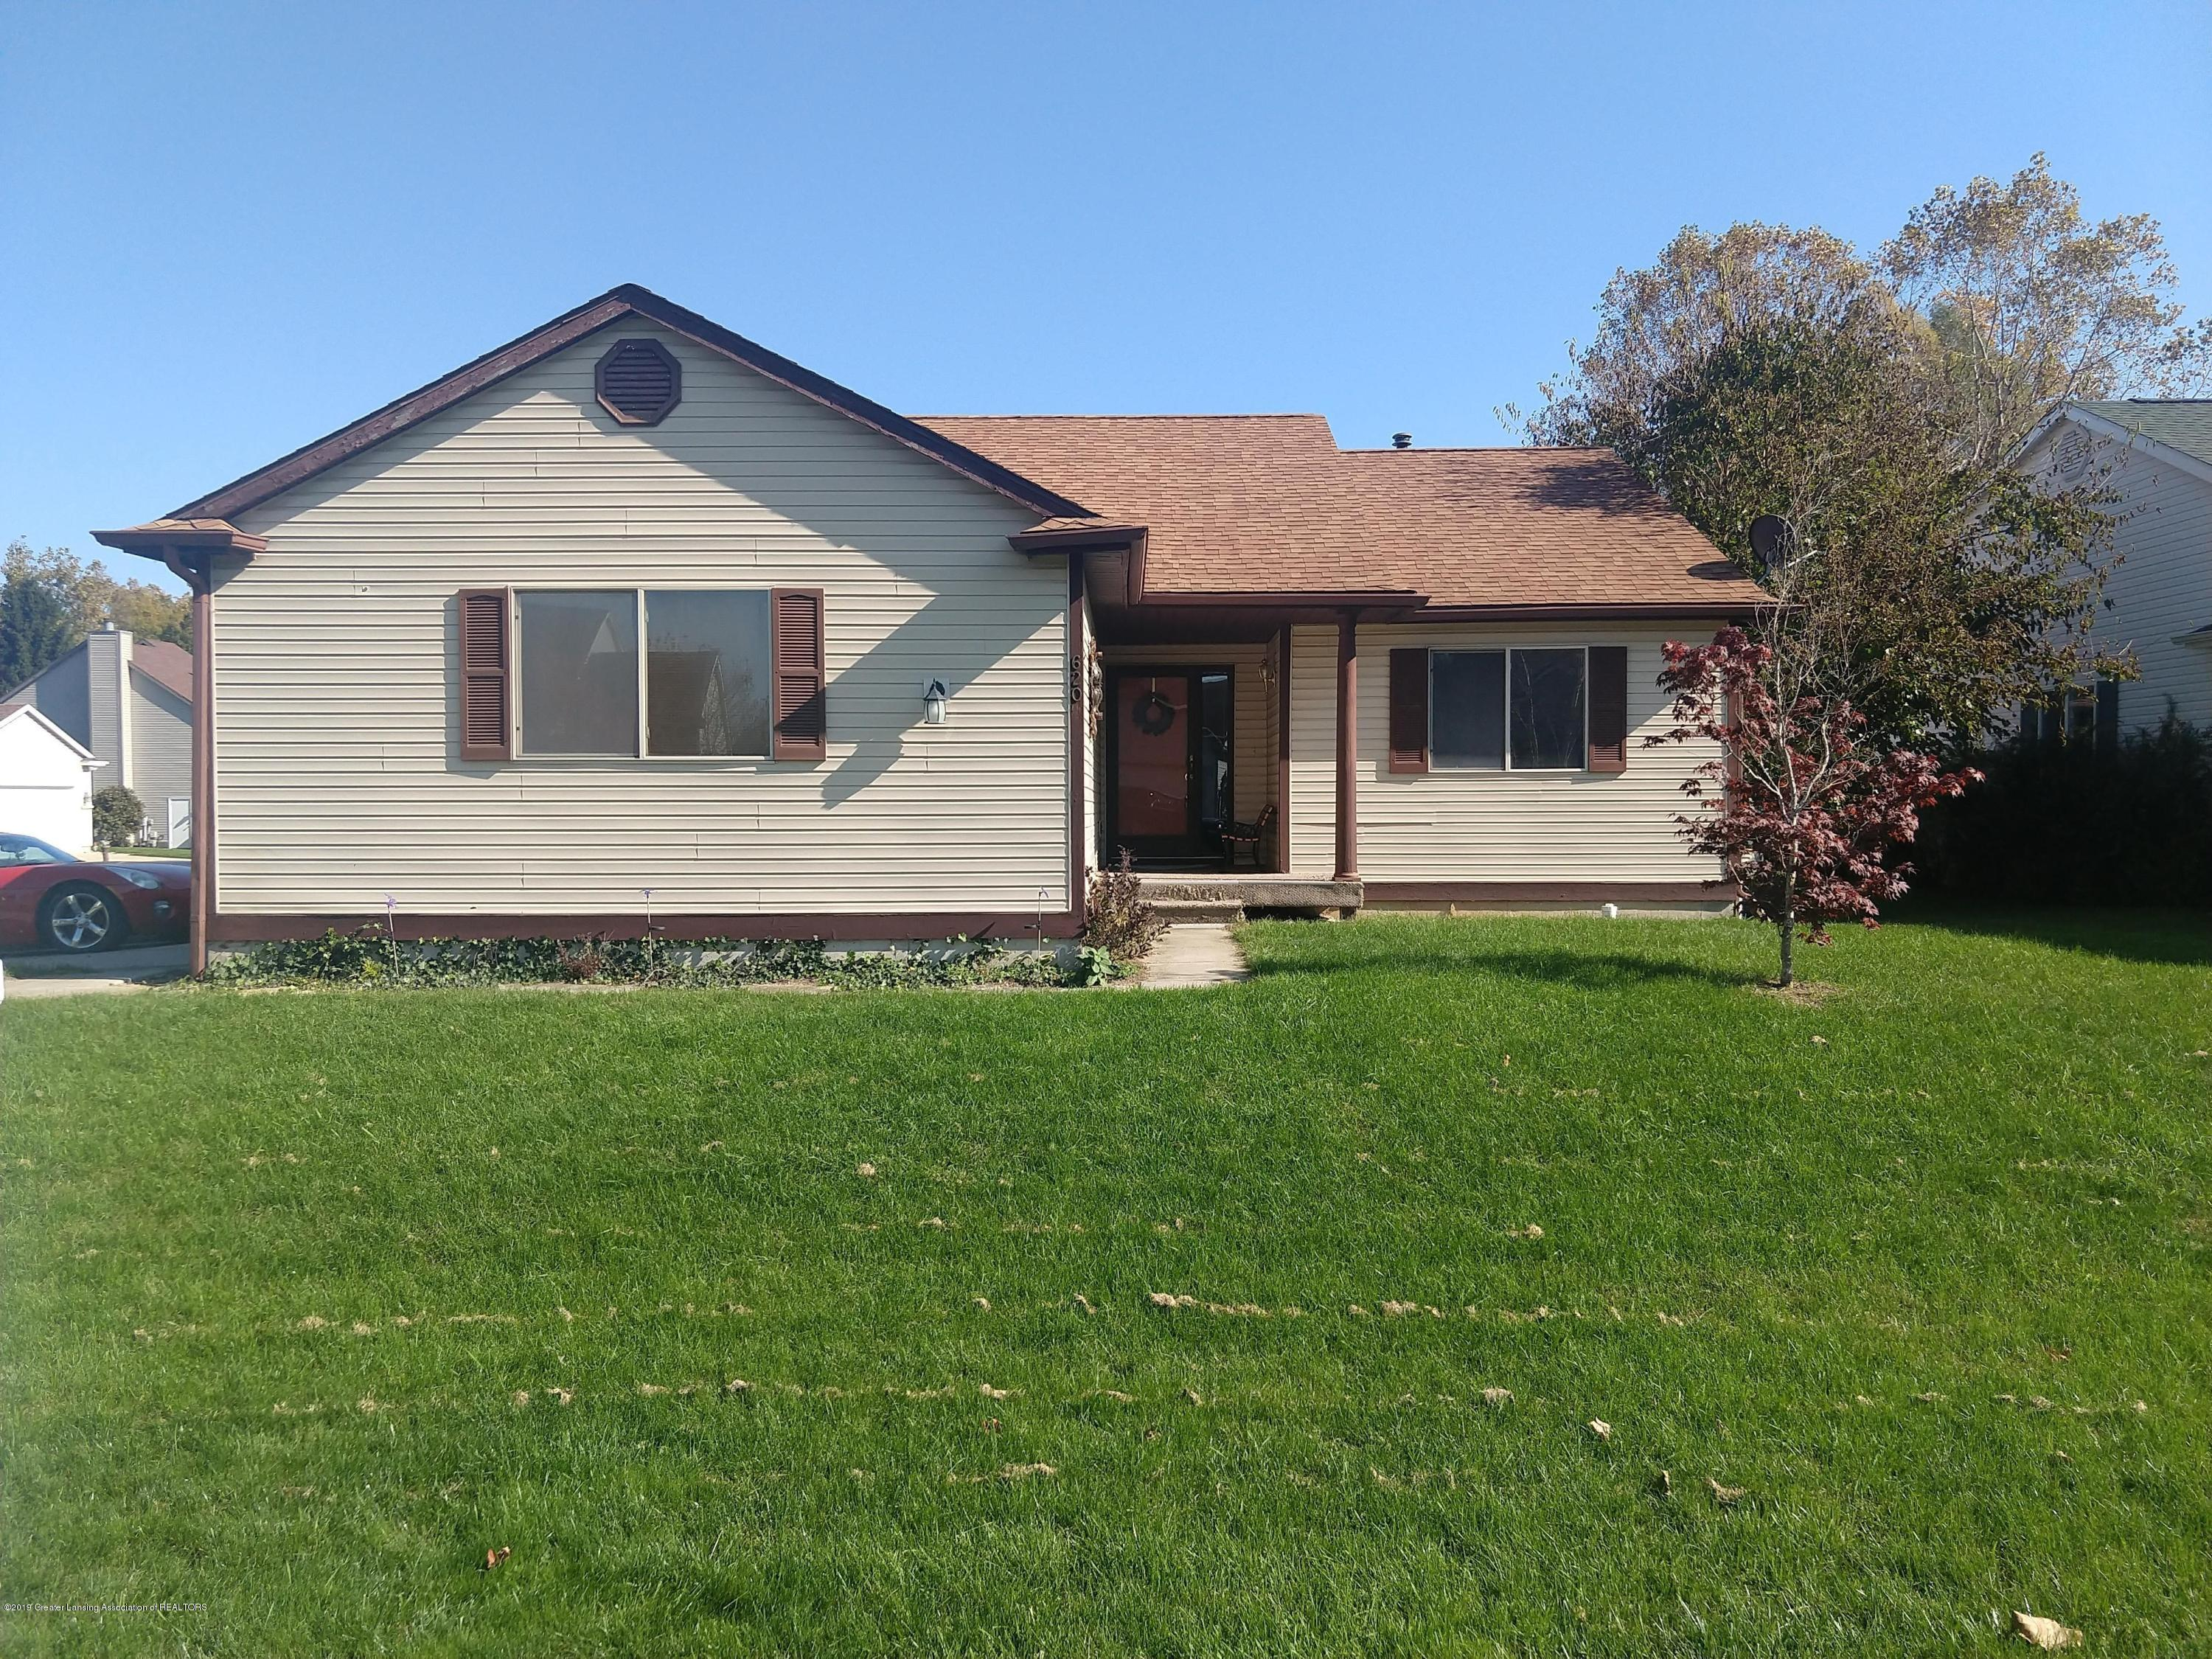 620 Winding River Dr - 1 - 1